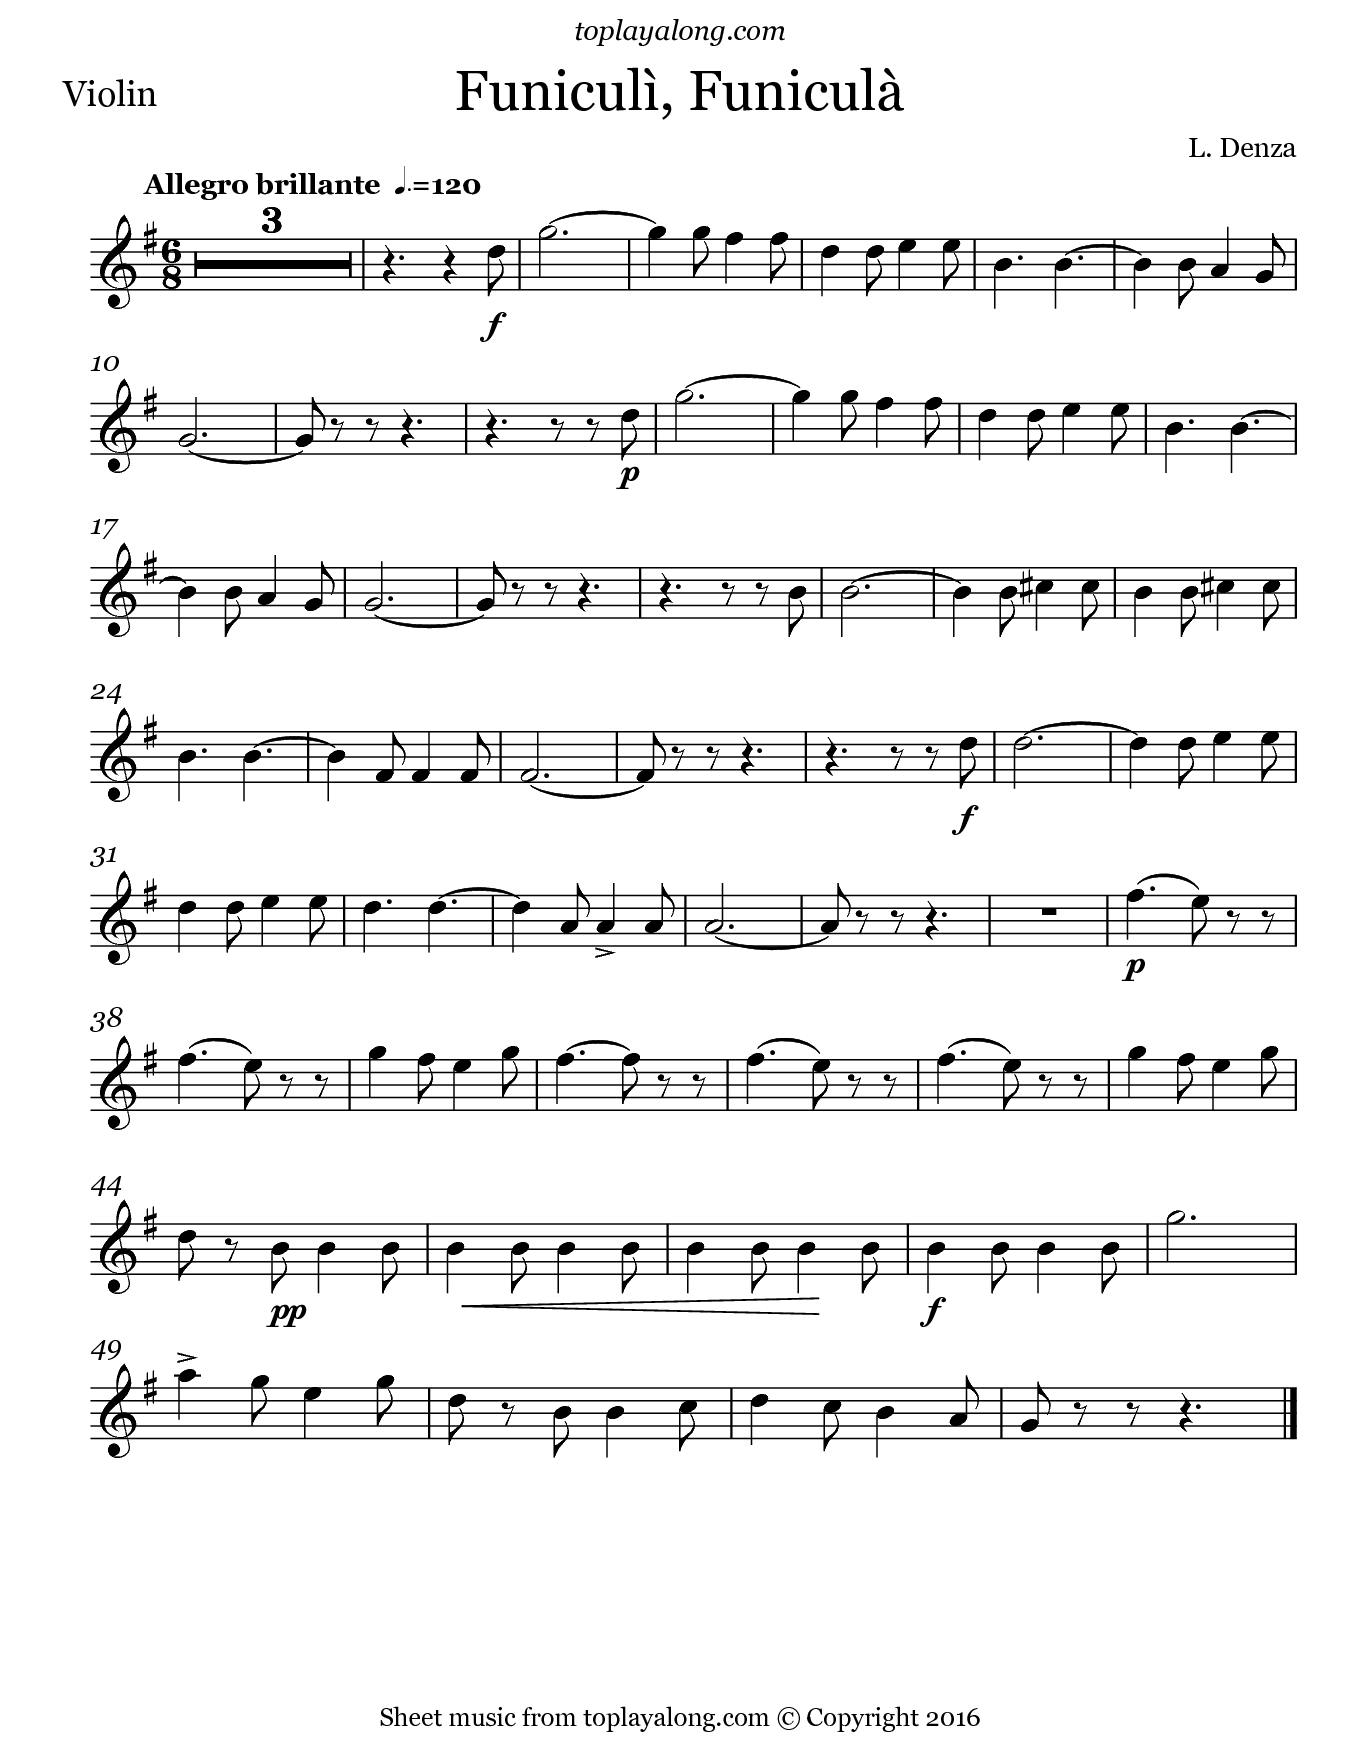 Funiculì, Funiculà by Denza. Sheet music for Violin, page 1.